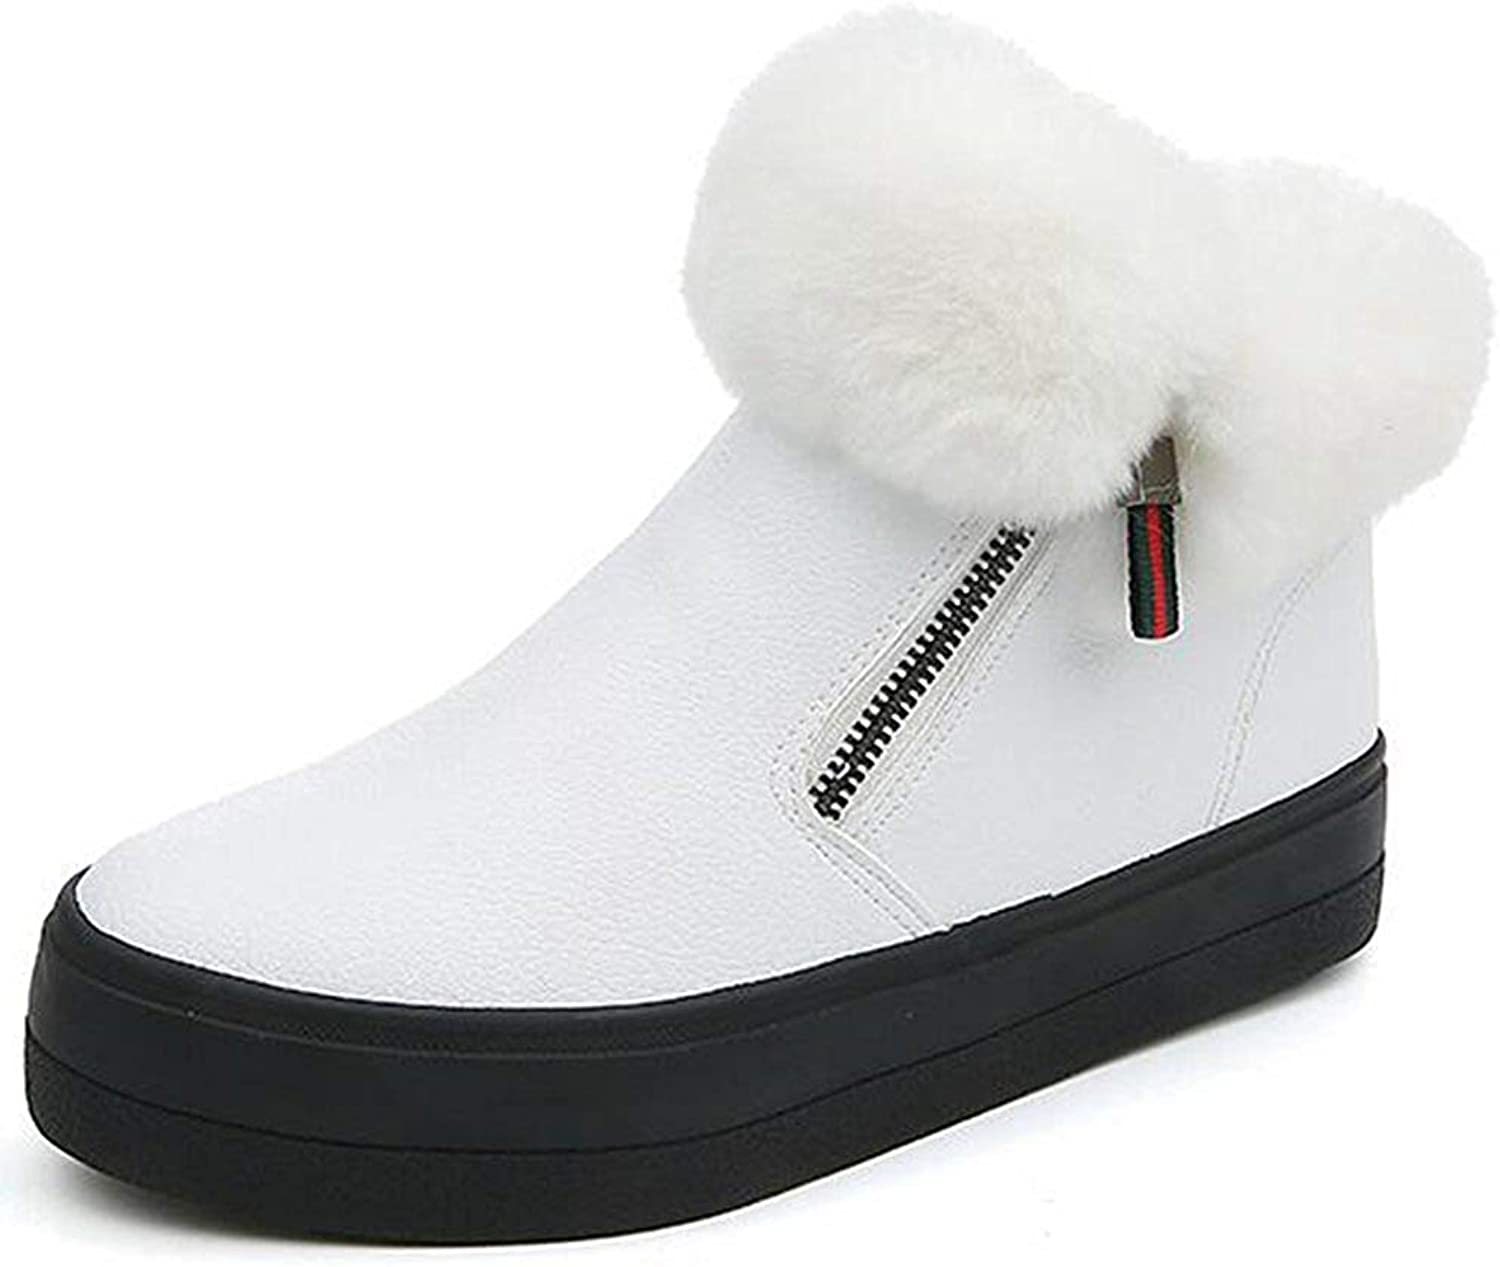 Ghssheh Women's Warm Faux Fur Side Zipper Platform Sneakers Flats Fleece Lined Ankle Snow Boots shoes White 7.5 M US